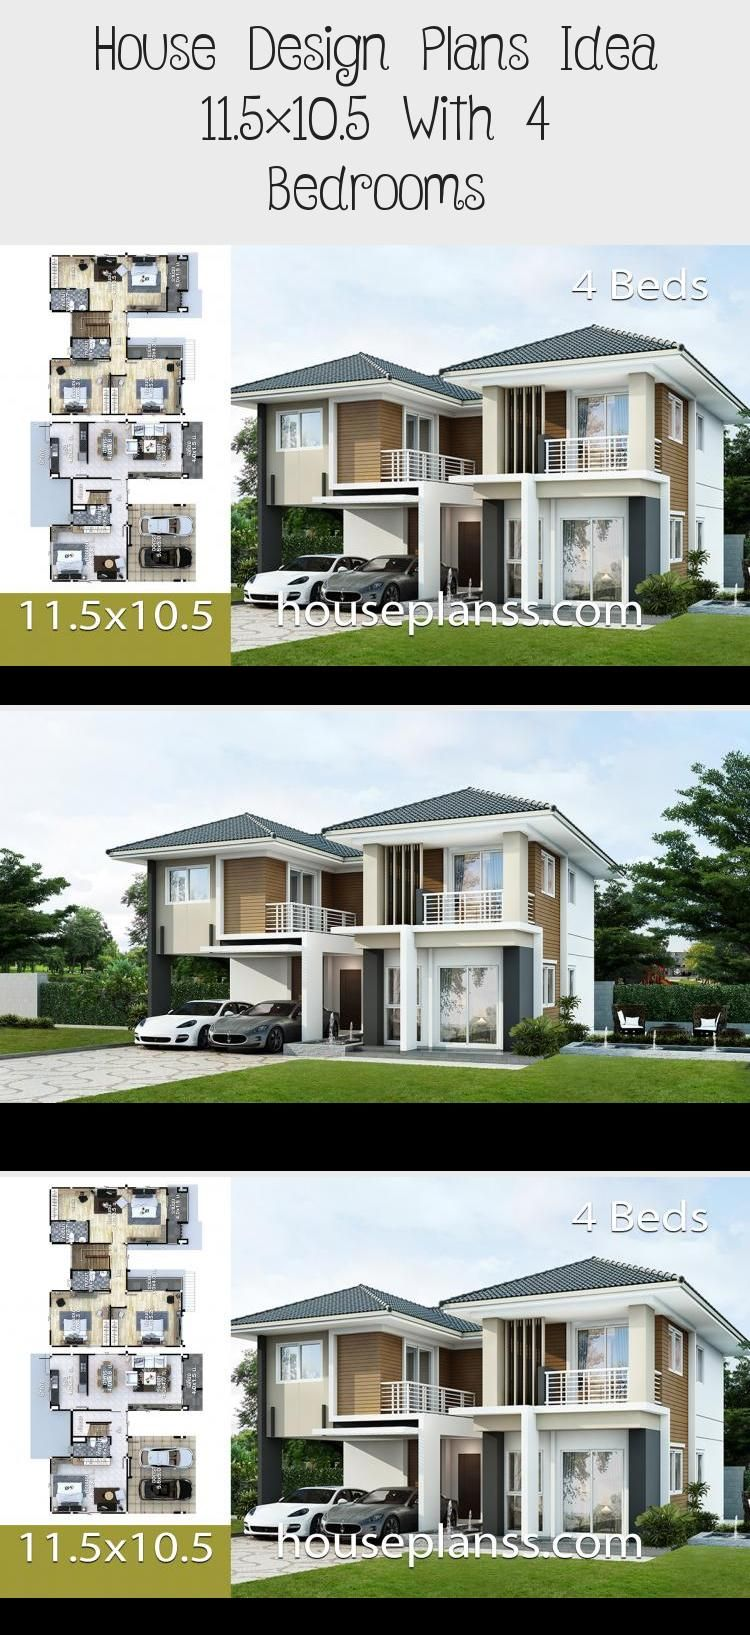 House Design Plans Idea 11 5 10 5 With 4 Bedrooms In 2020 Home Design Plans House Design House Styles